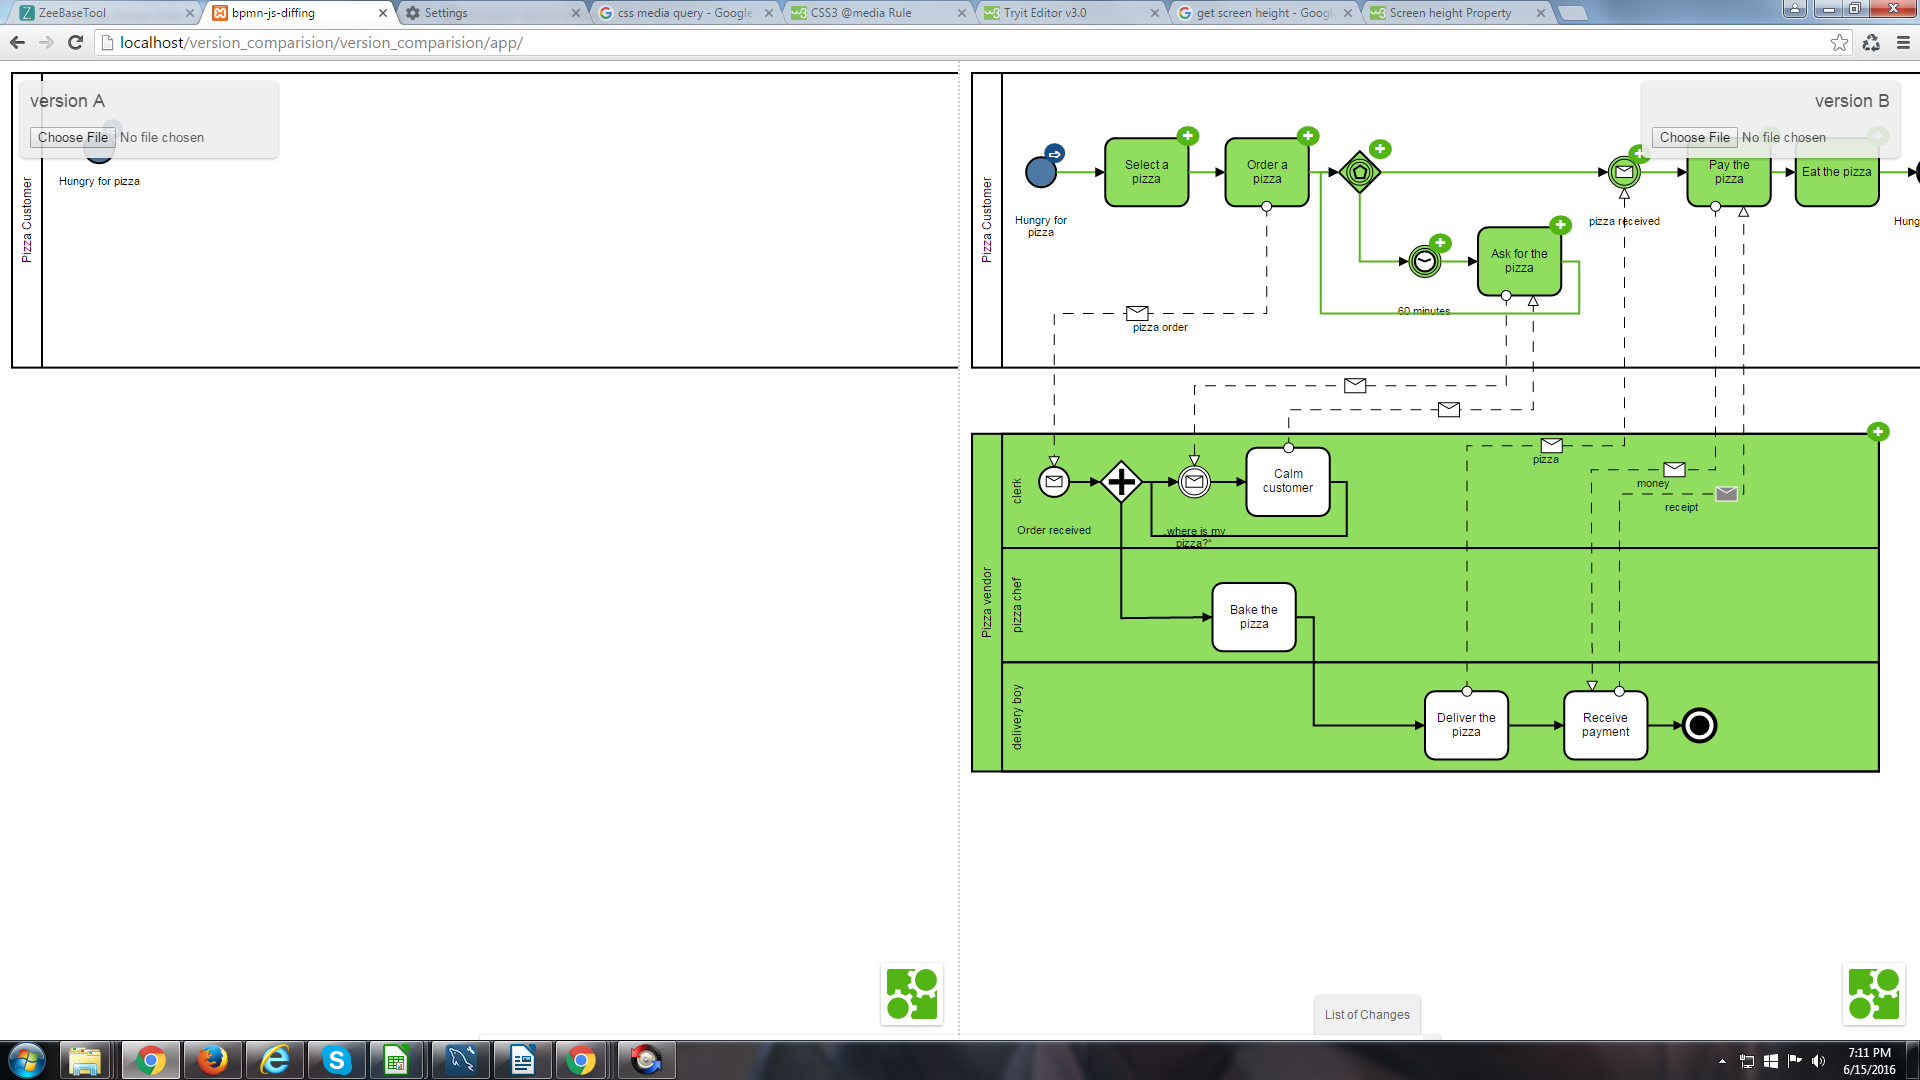 Bpmn js diffing comparing changes hides diagram from user view pasted image1920x1080 178 kb pooptronica Choice Image